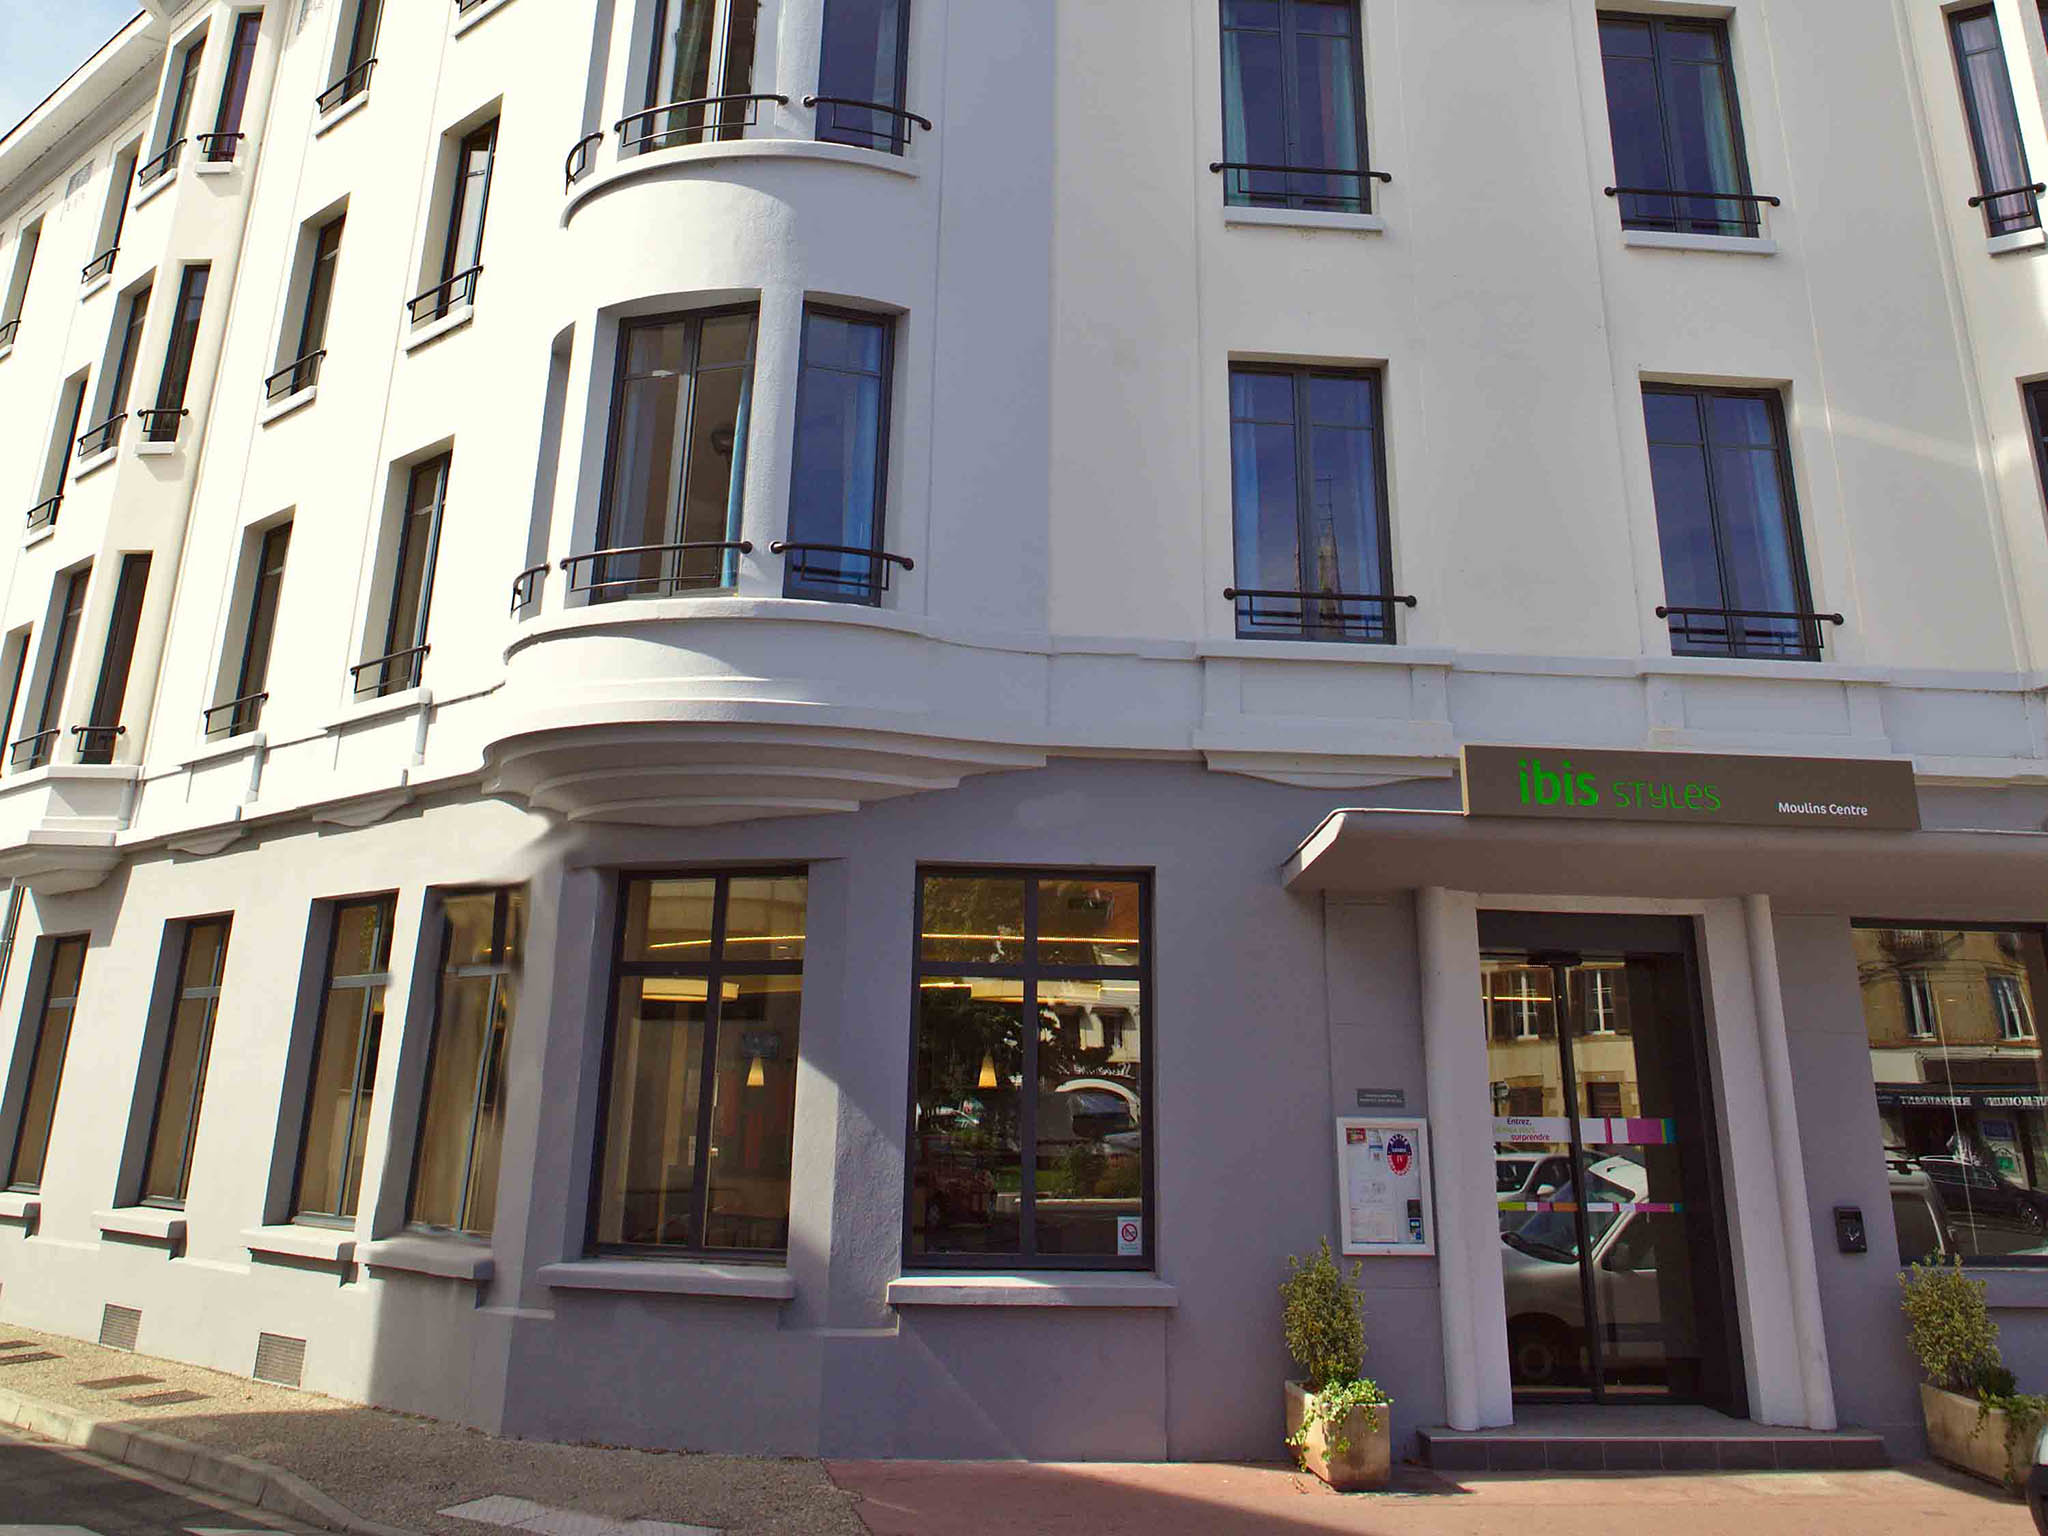 Hotel – Ibis Styles Moulins Centre